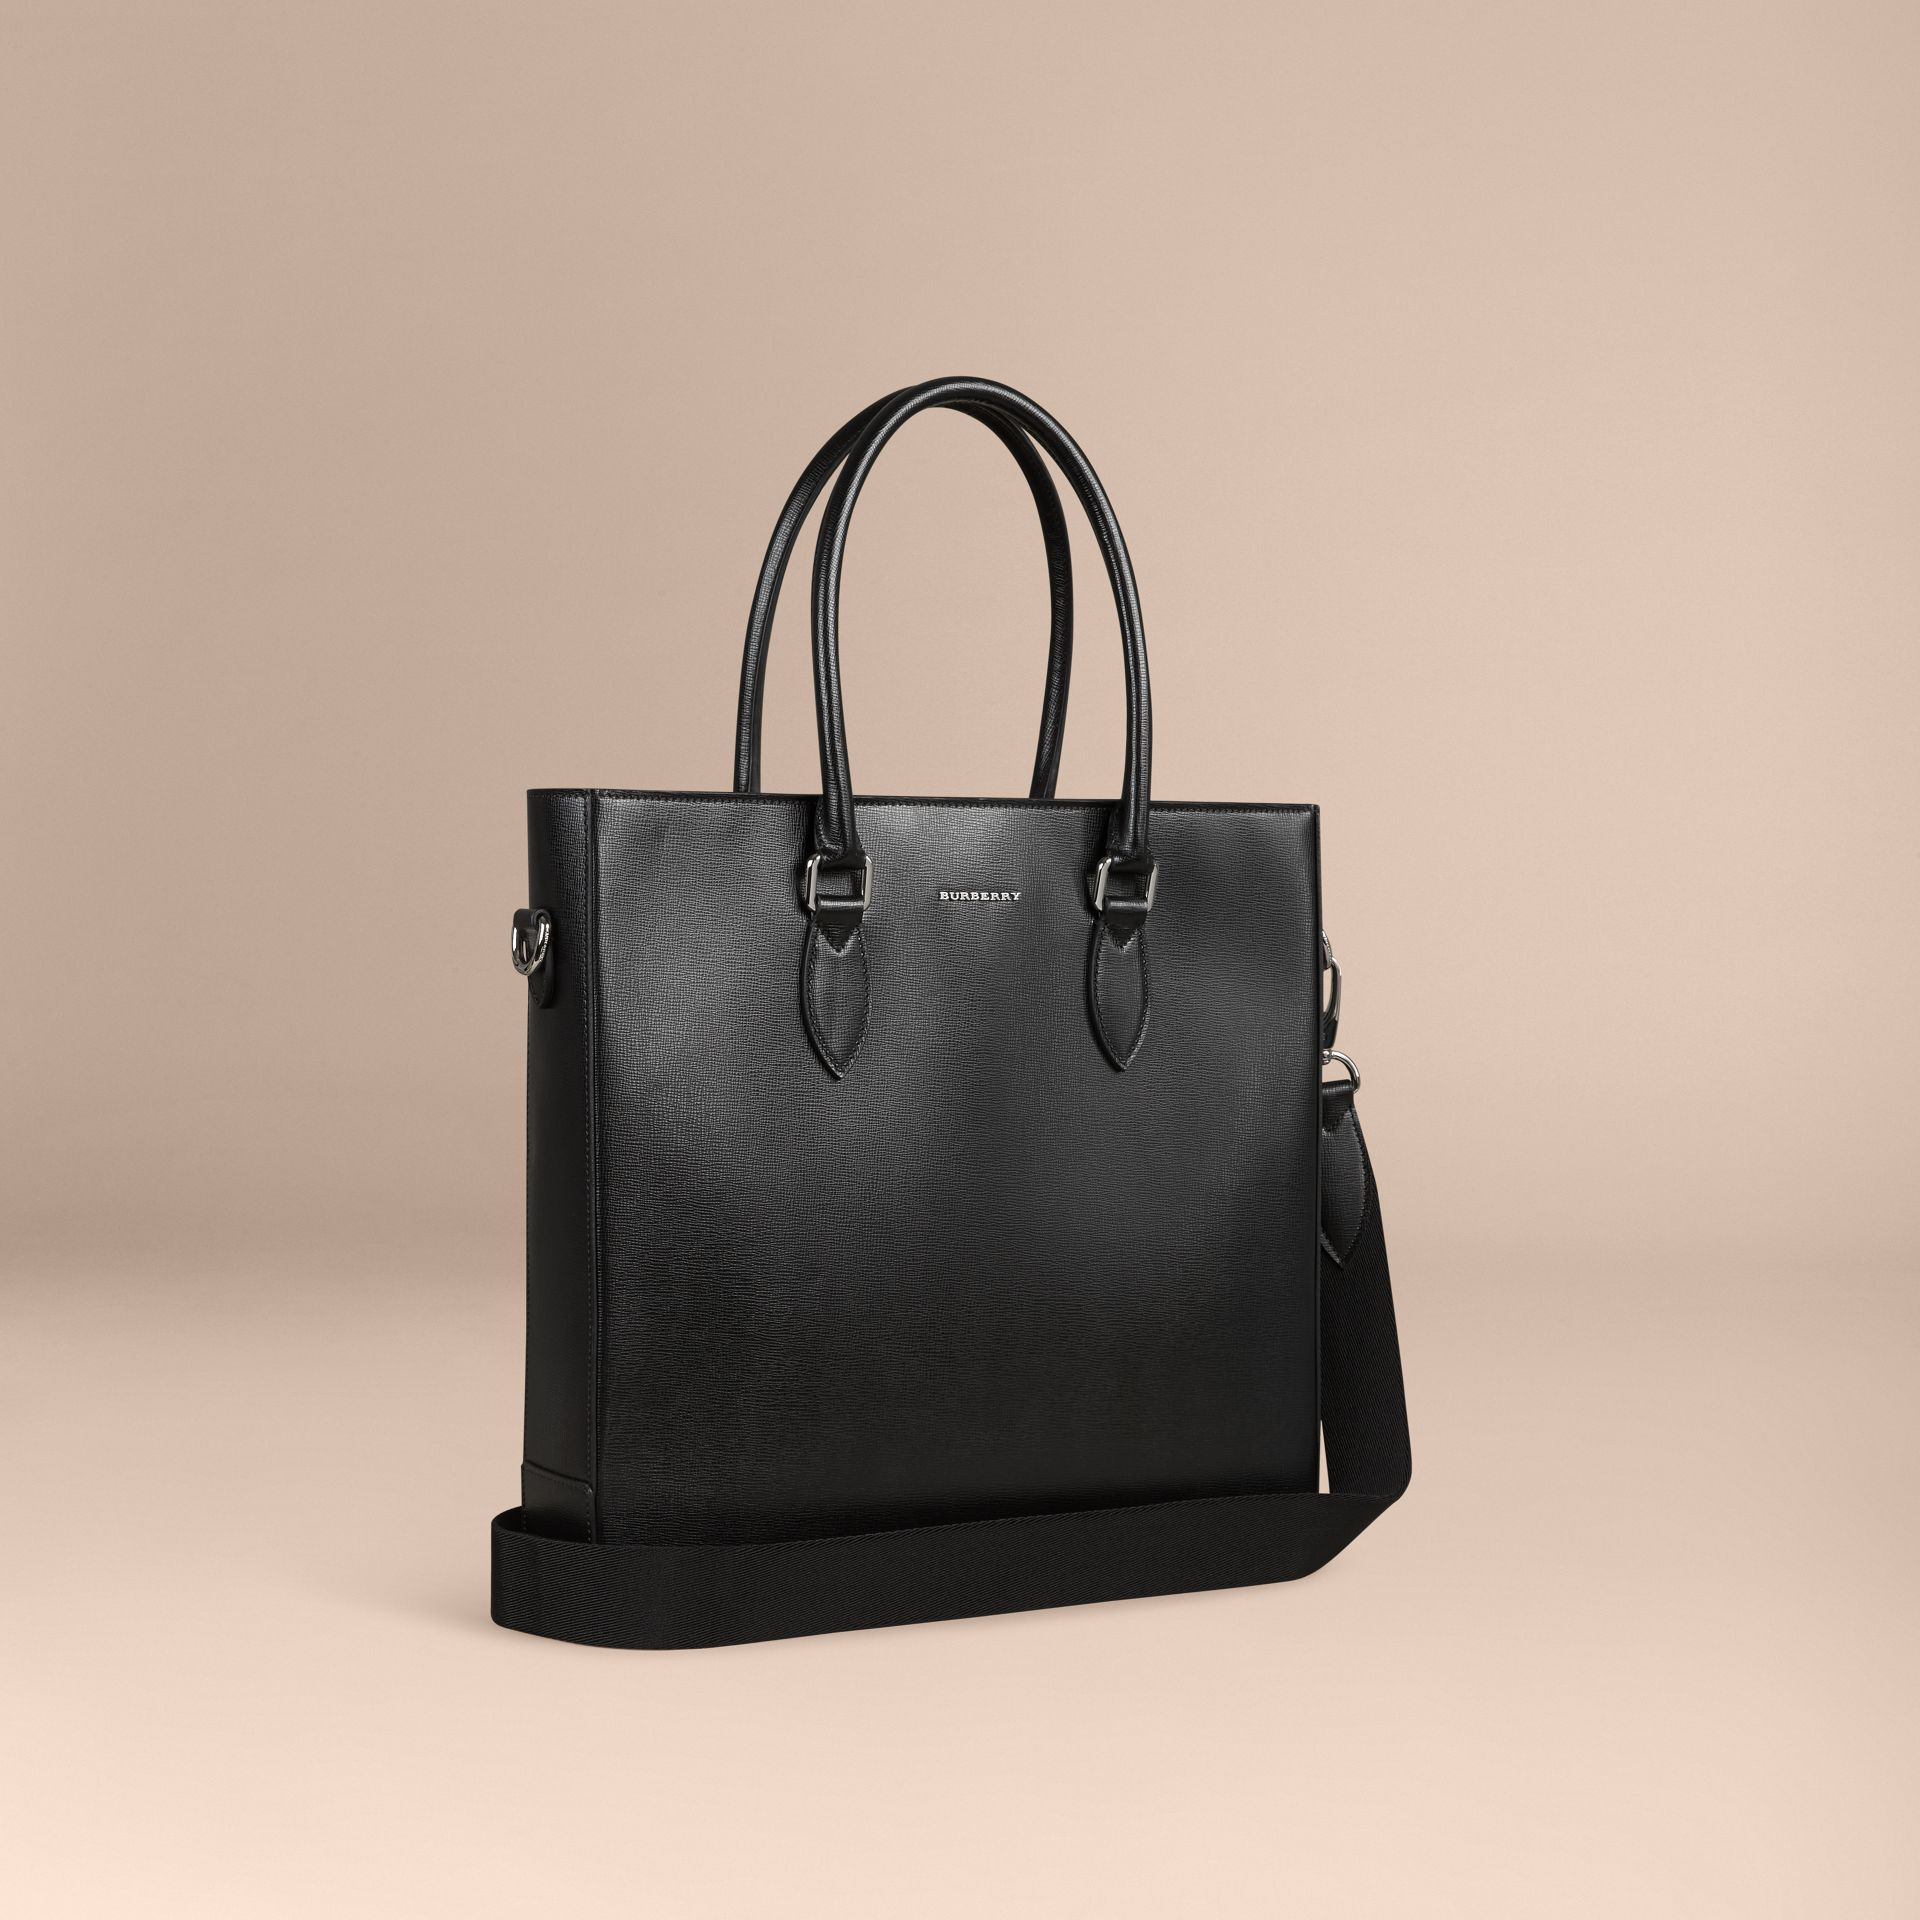 Black London Leather Tote Bag Black - gallery image 1